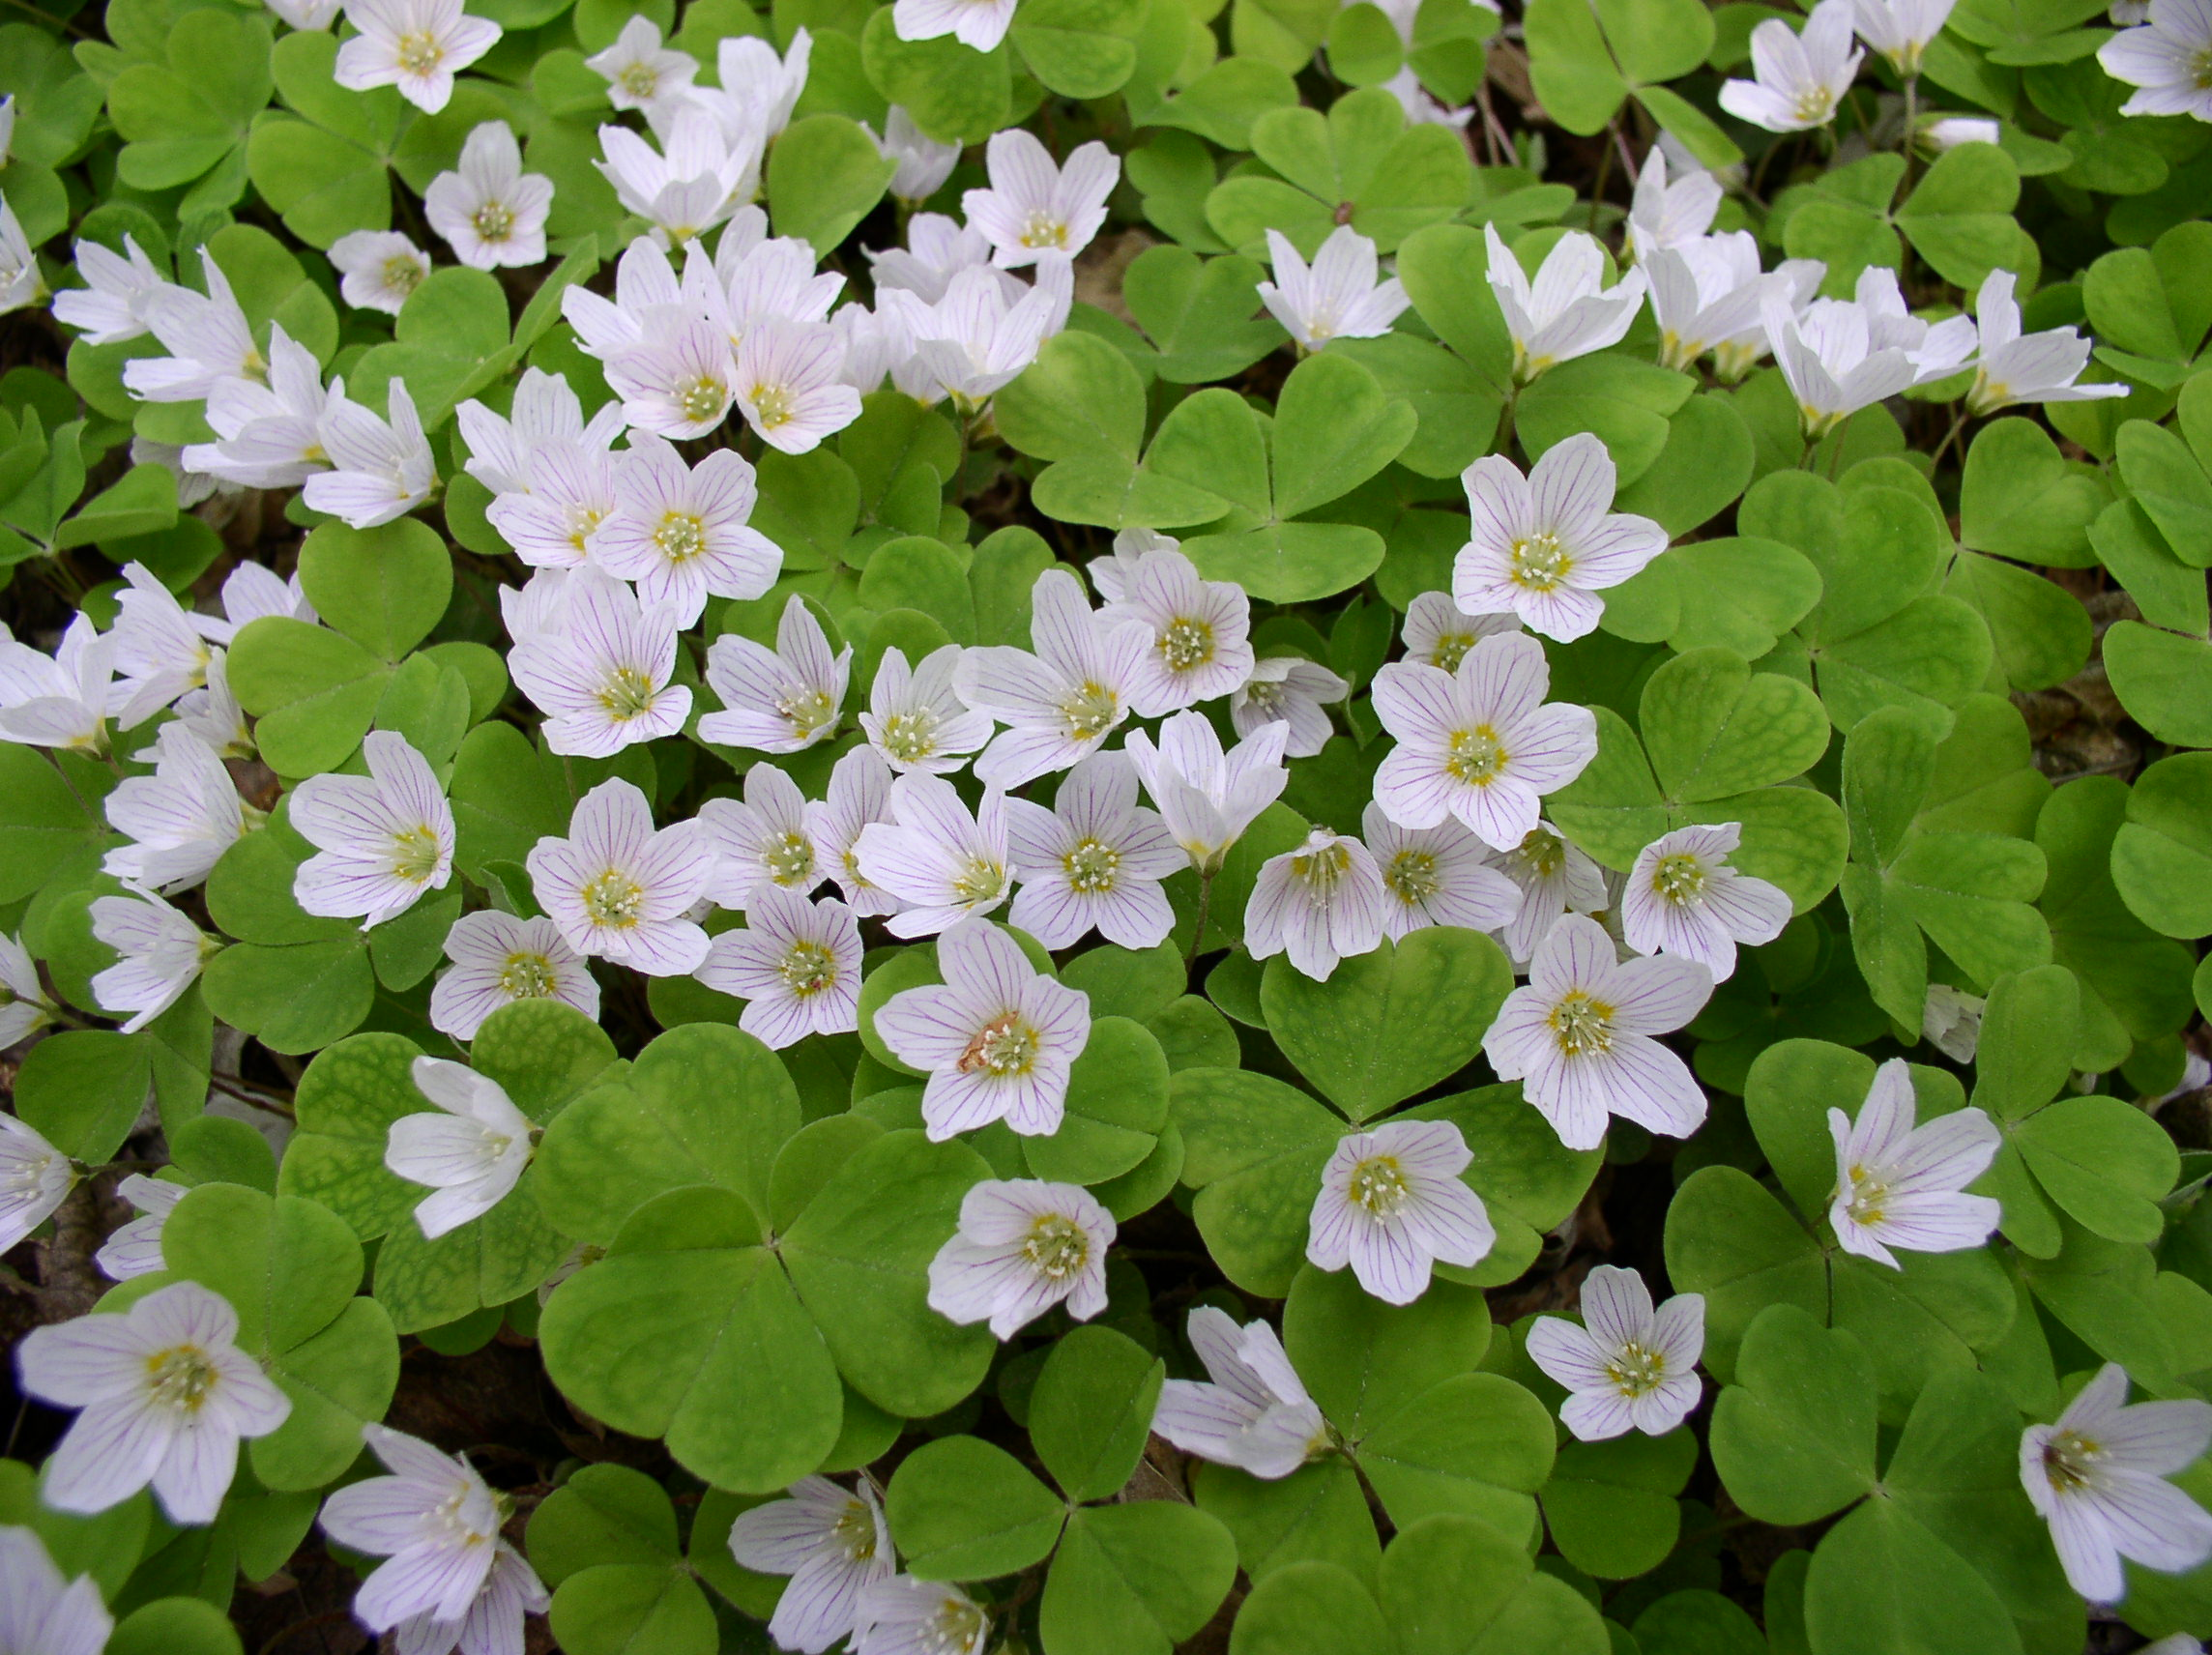 https://upload.wikimedia.org/wikipedia/commons/c/c7/Oxalis_acetosella-1.jpg